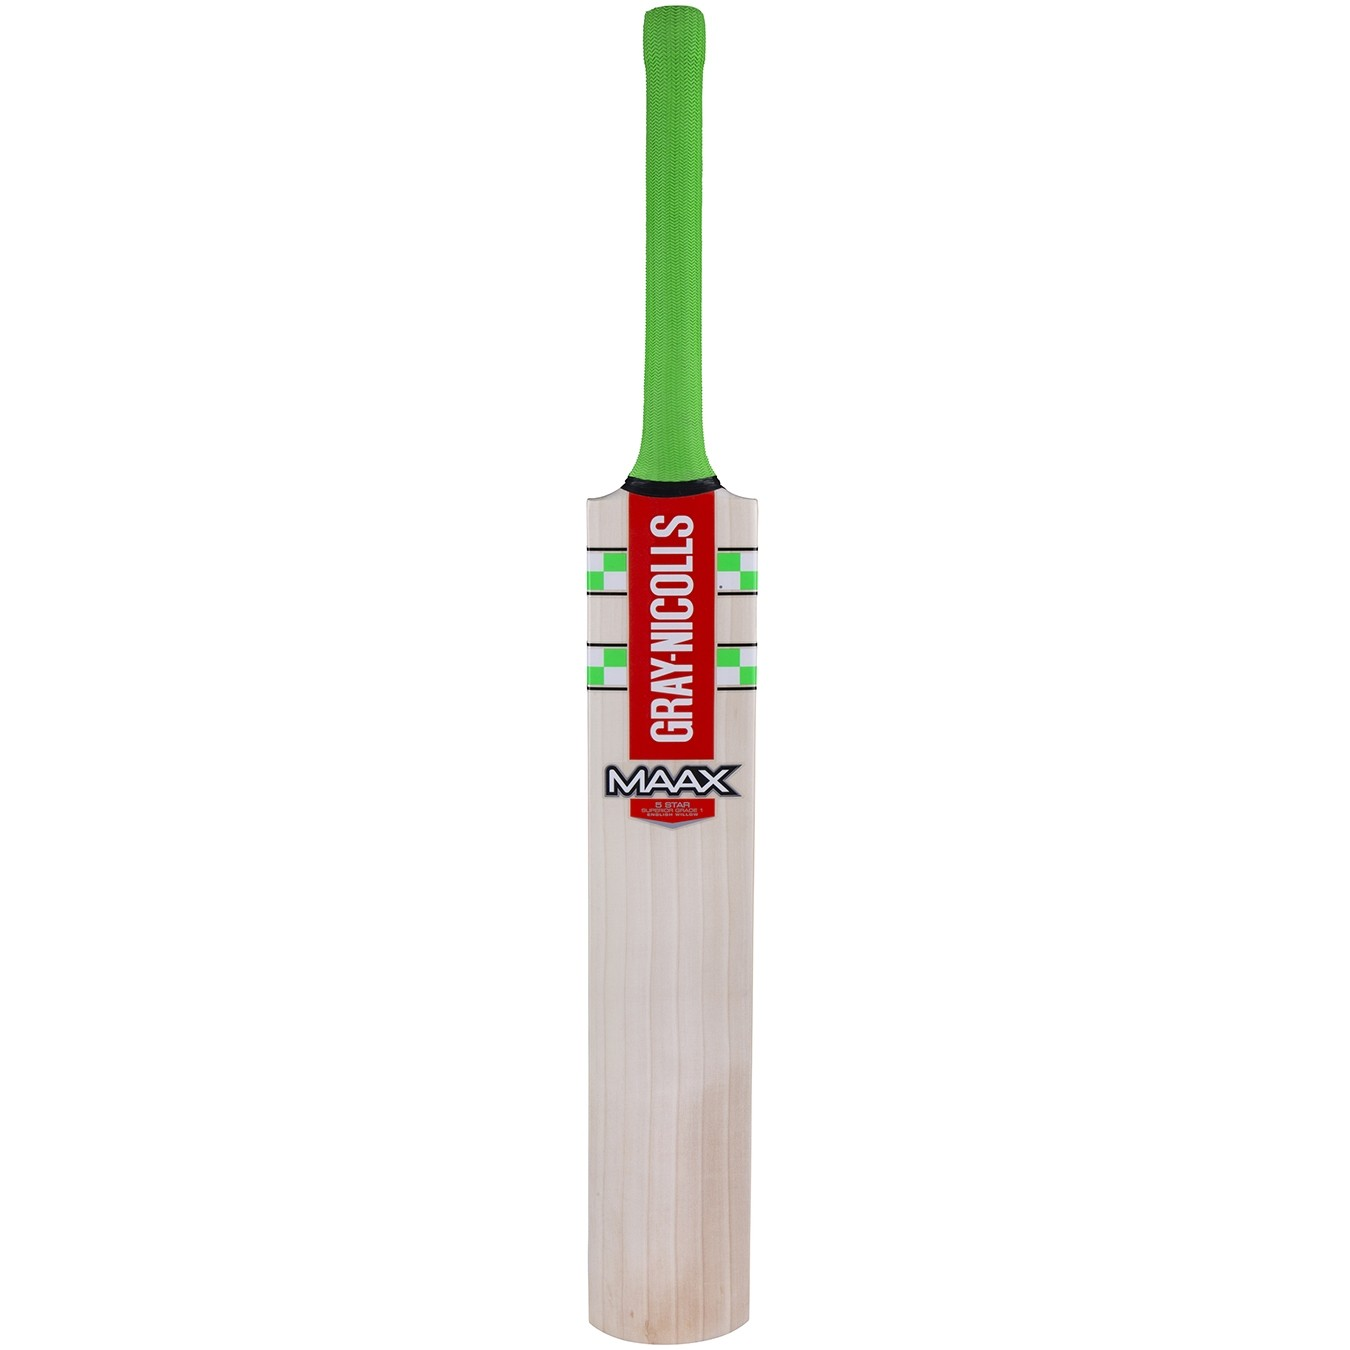 2021 Gray Nicolls Maax 200 Cricket Bat